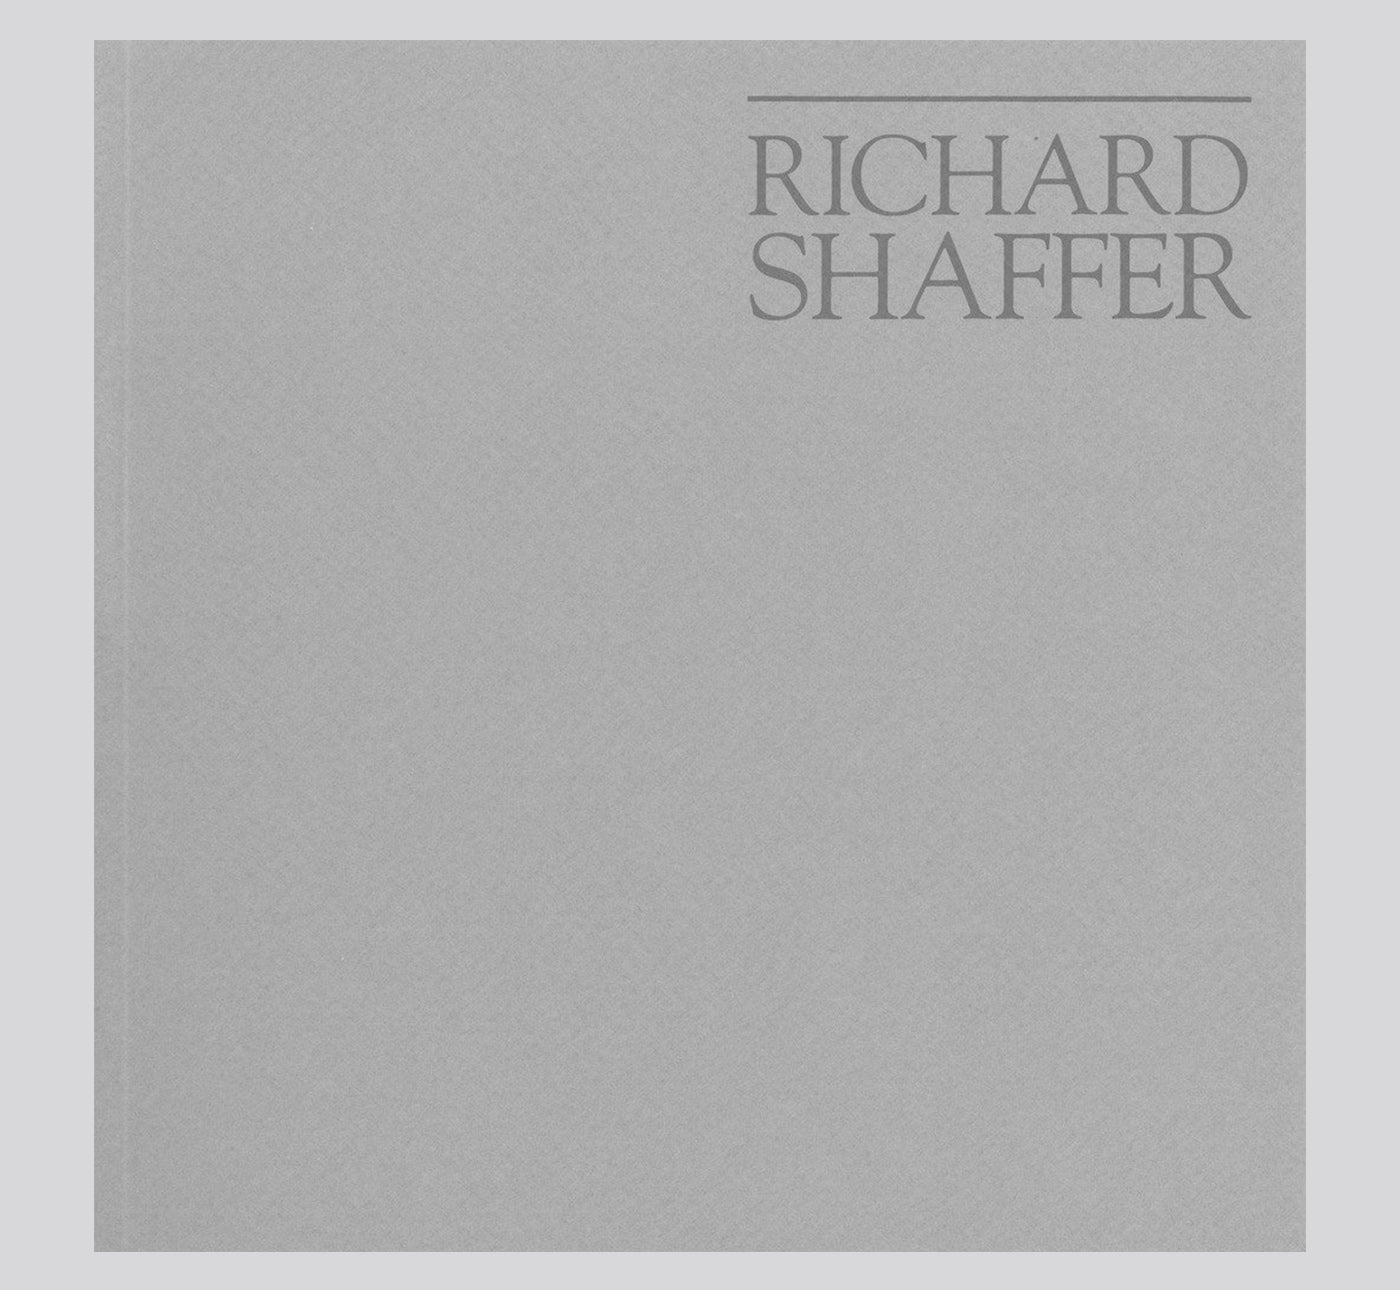 Richard Shaffer: Selected Work 1979 - 1983